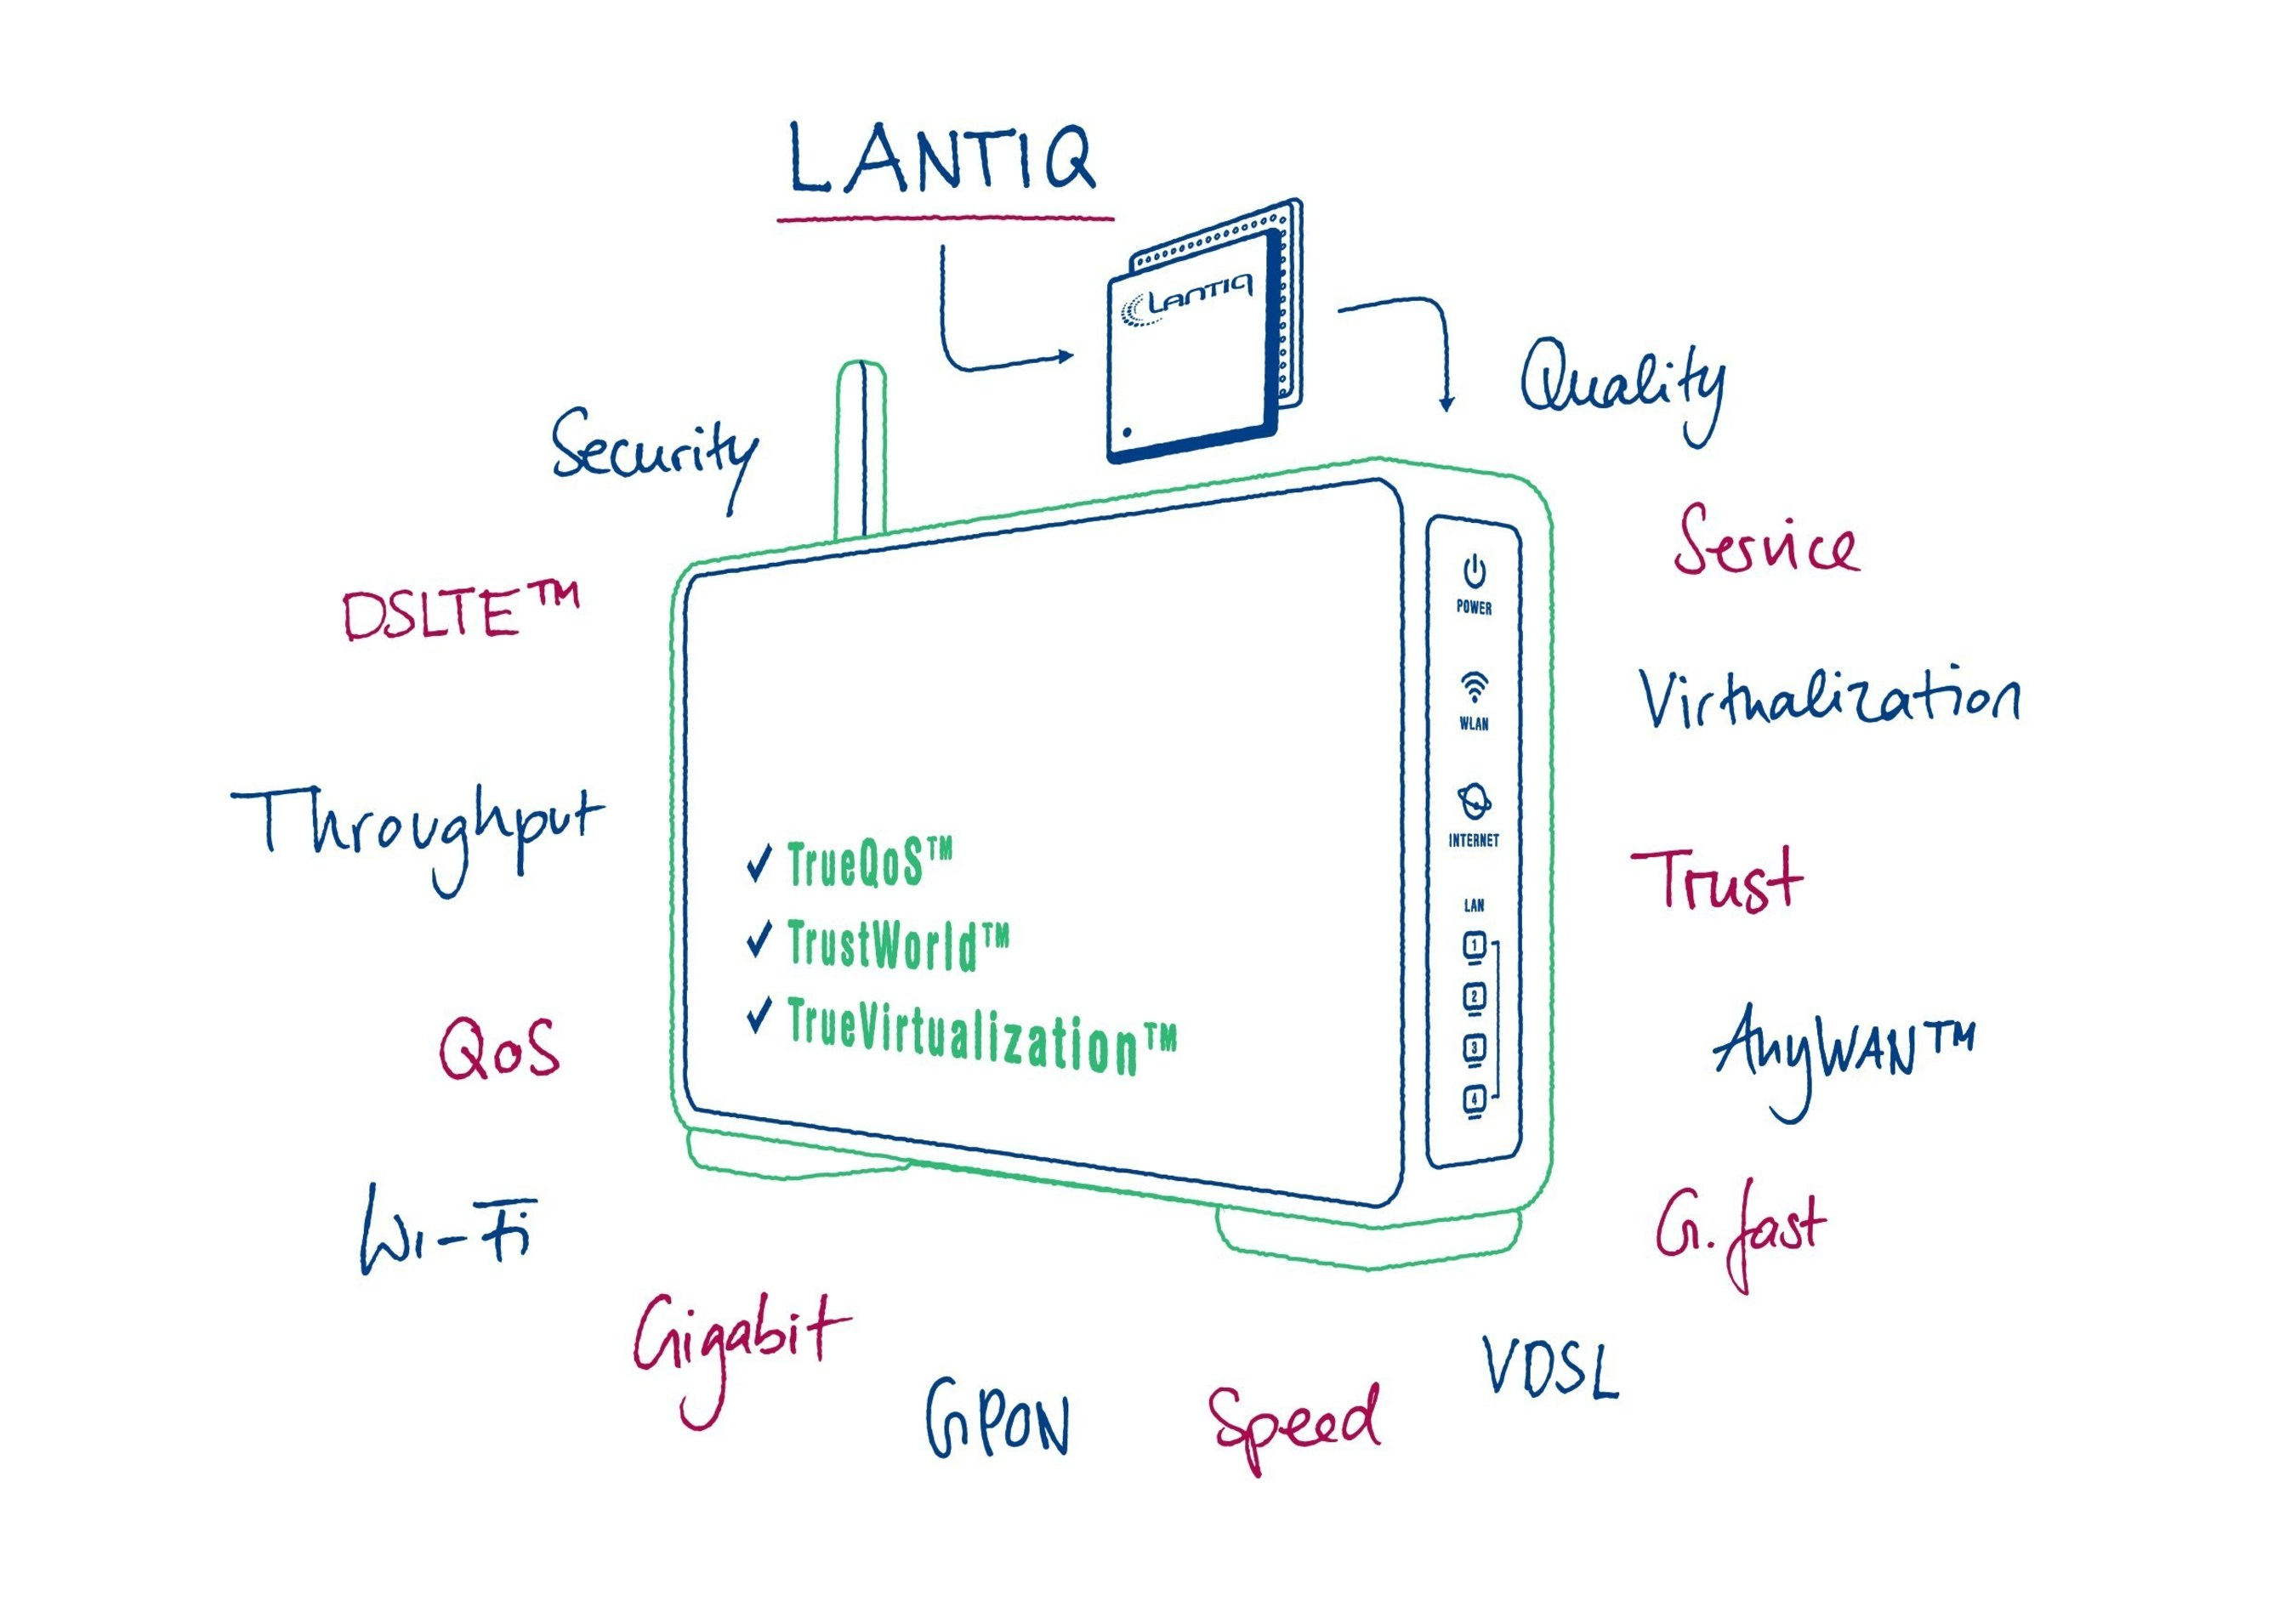 You get the service you want at the quality you want. By far the most flexible and secure broadband gateway that has ever existed, based on the Lantiq GRX350 network processor.